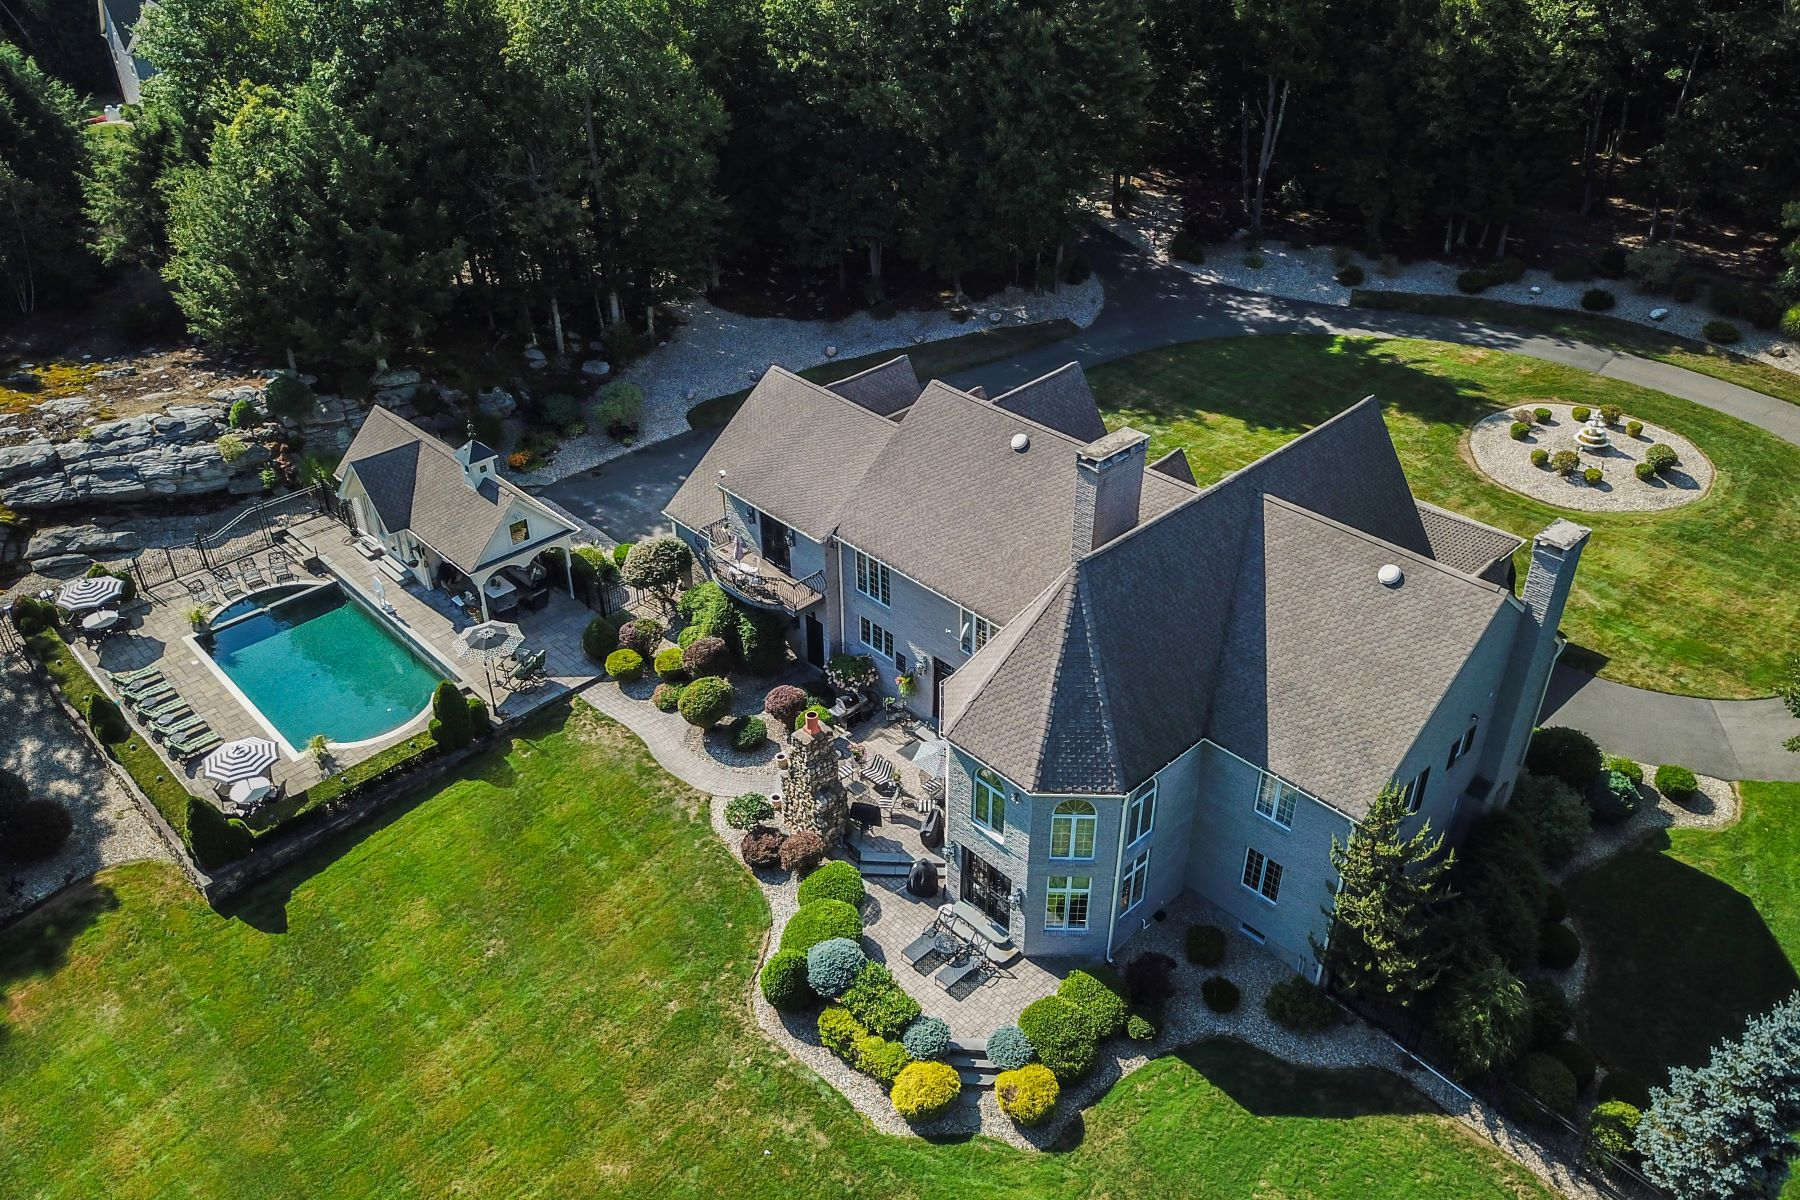 Single Family Homes for Sale at Impressive Private Compound on 21 Acres 31 Deer Run Rd Barkhamsted, Connecticut 06063 United States